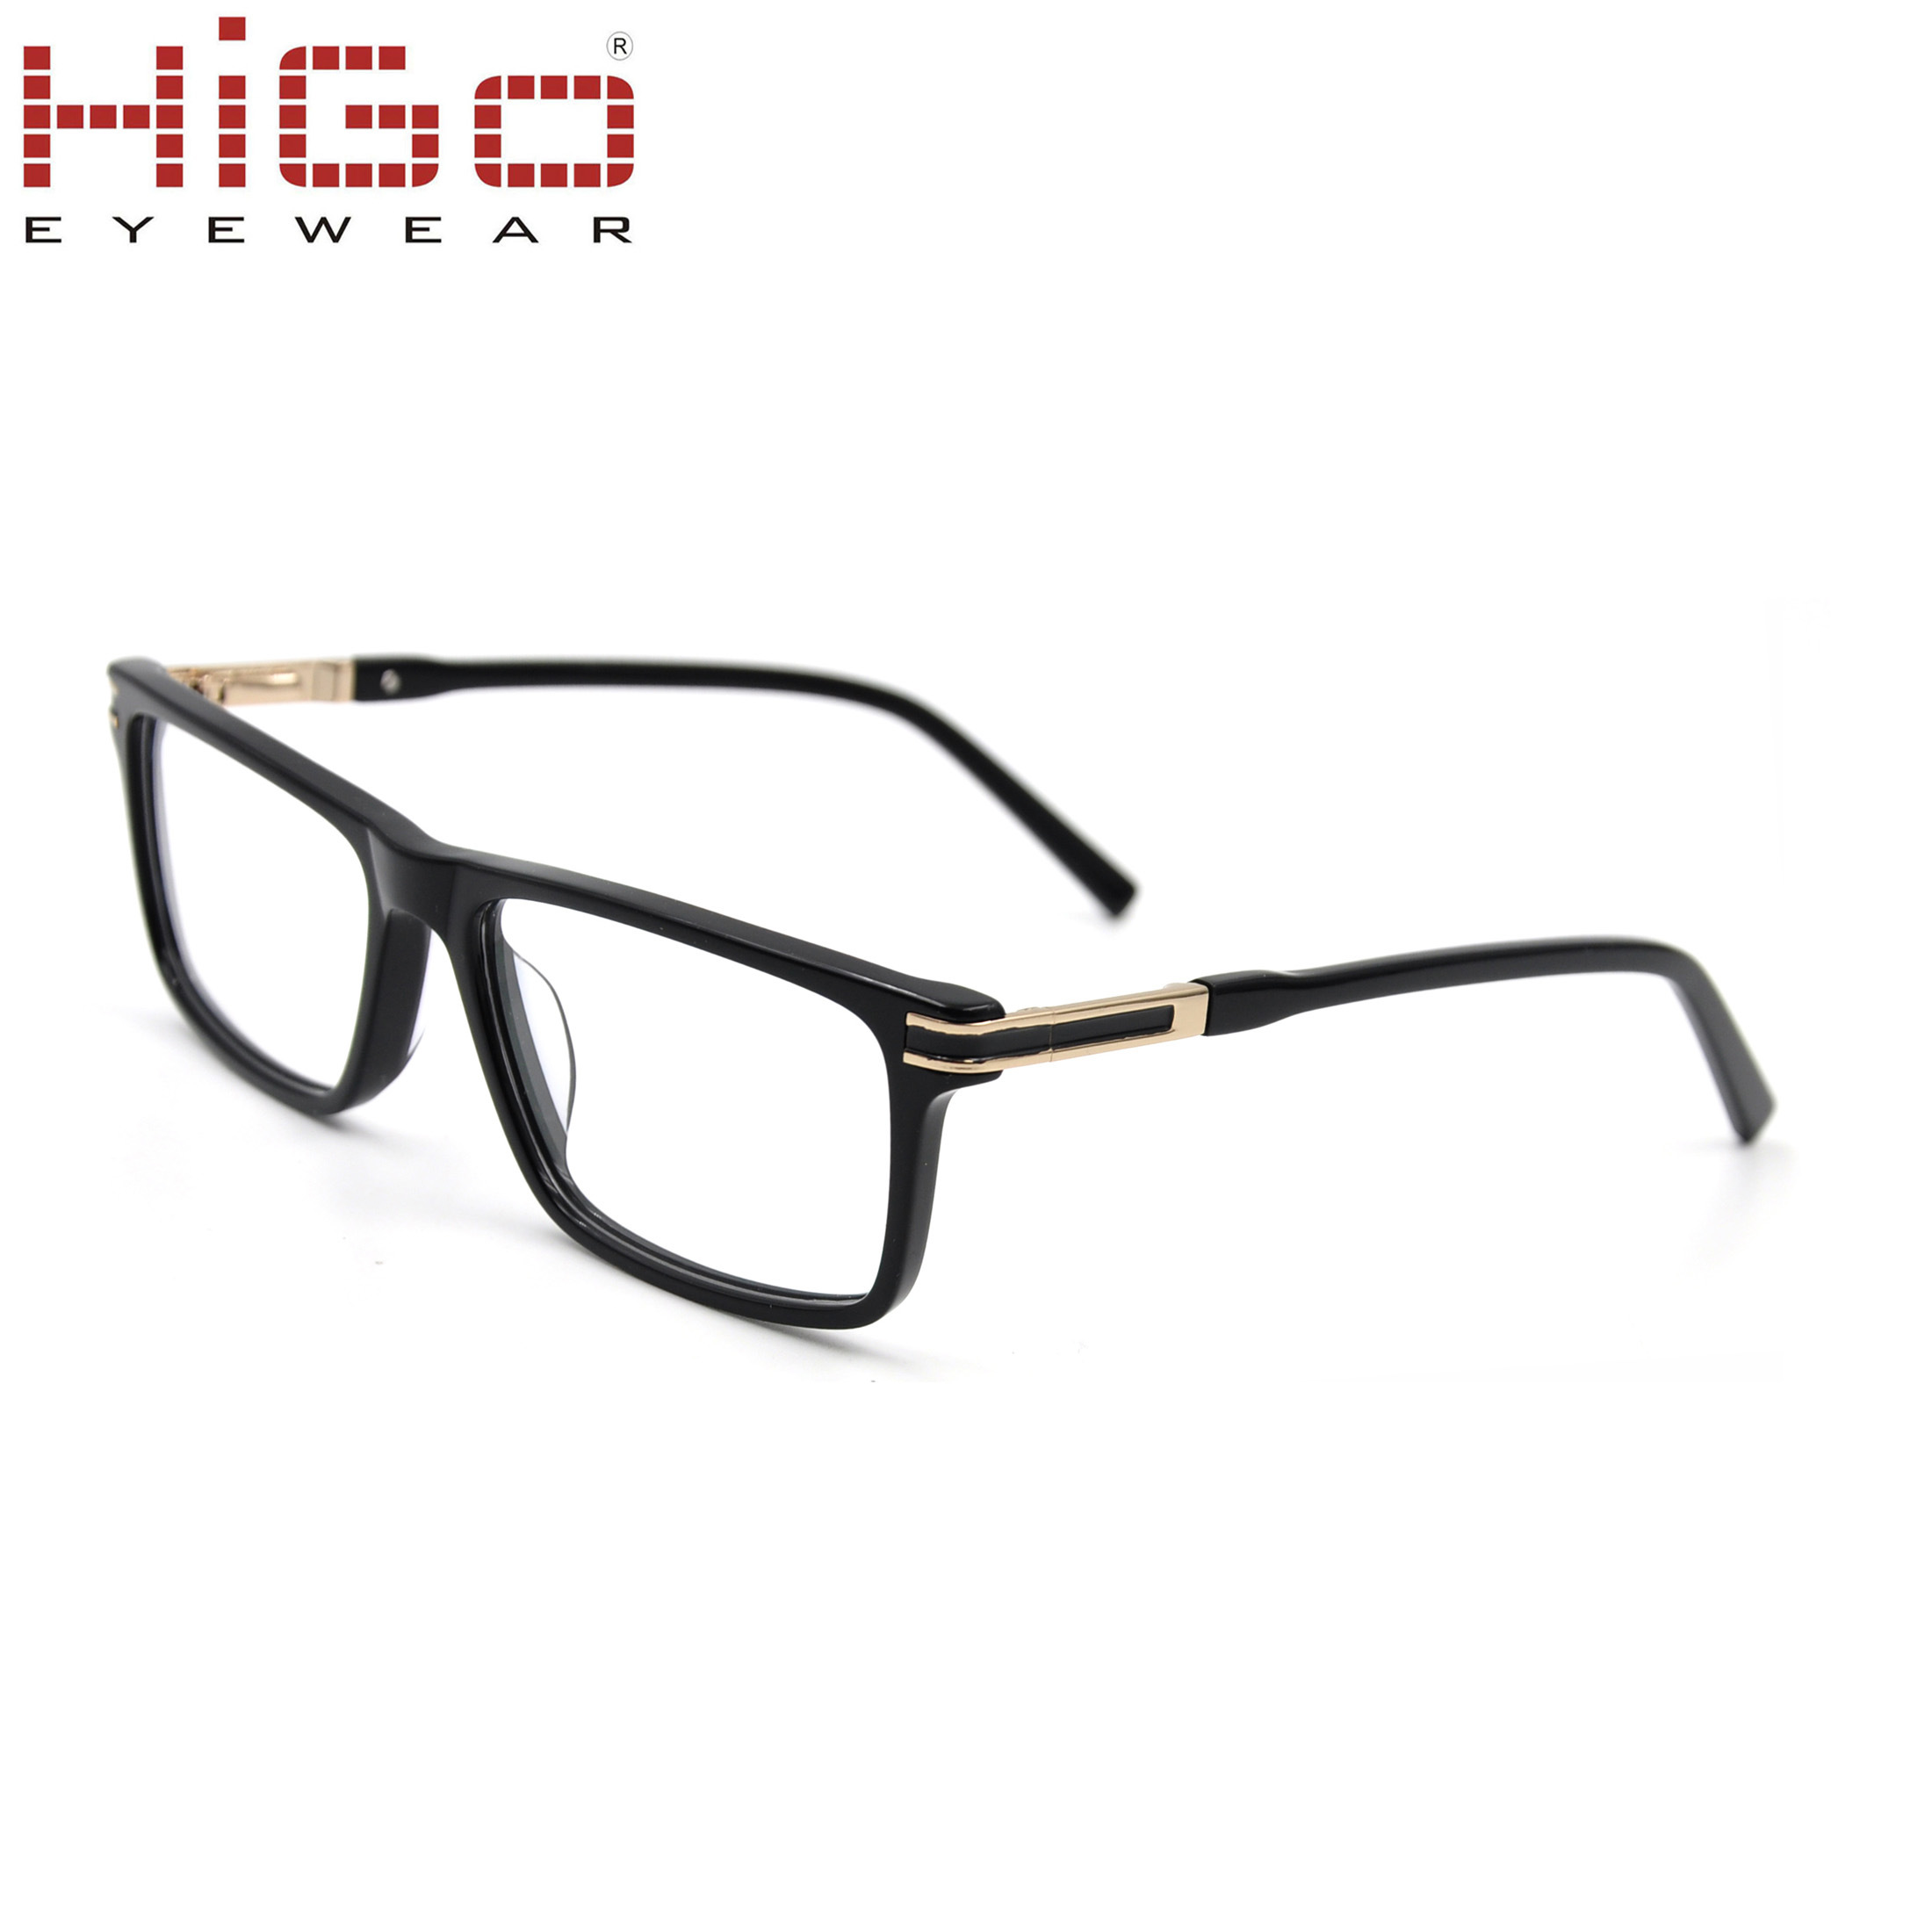 c710a458ddb Wholesale Glasses Frame - Buy Reliable Glasses Frame from Glasses ...